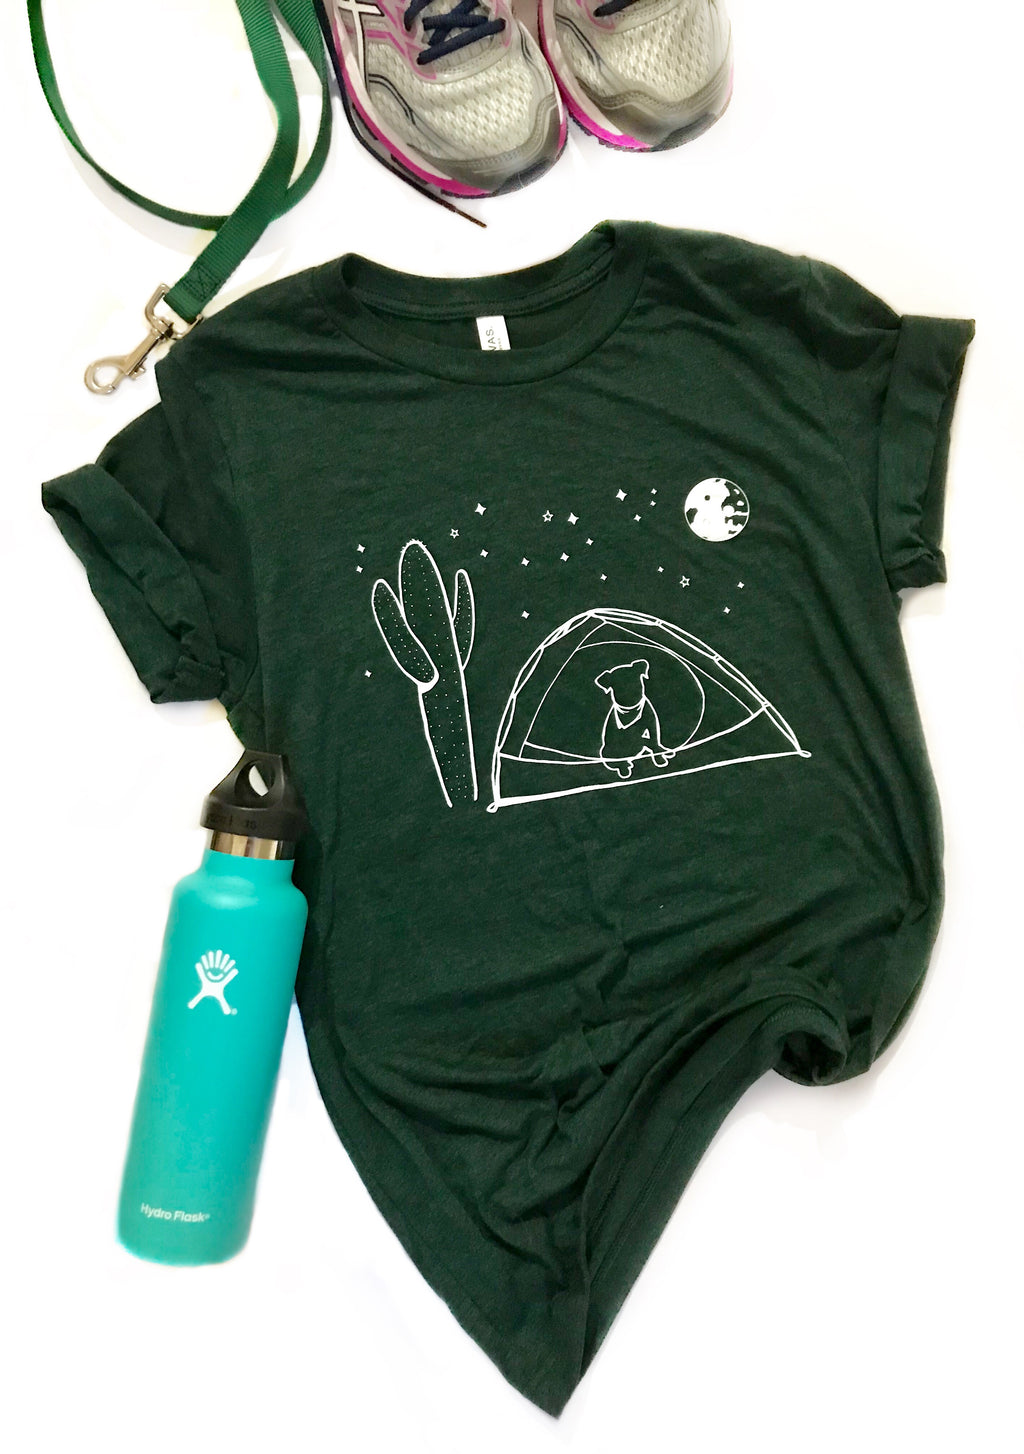 Camping Doggy - Fundraiser Tee